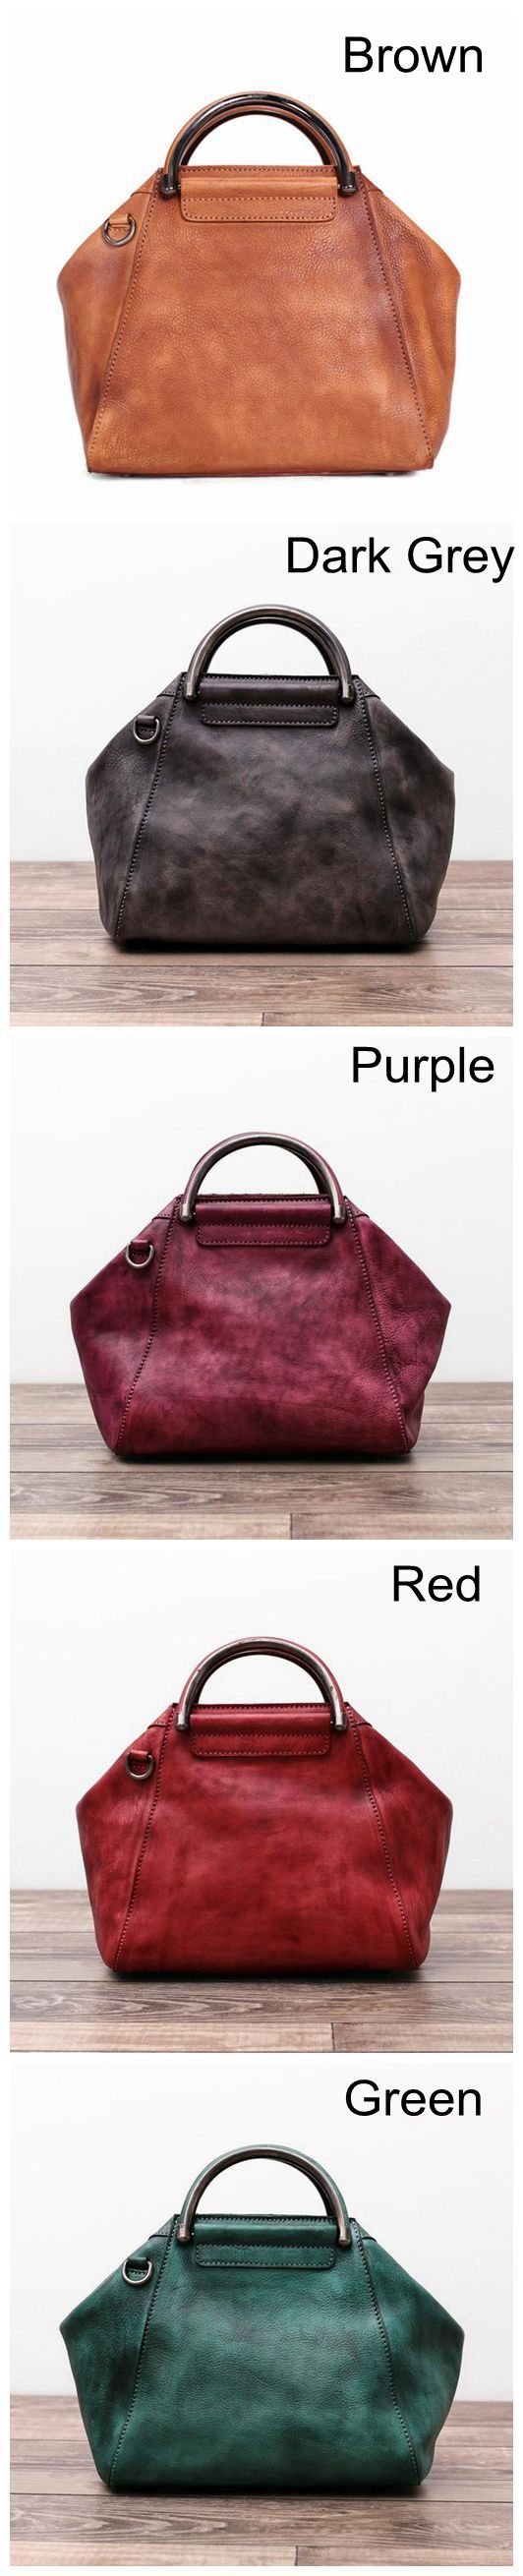 Handmade Full Grain Leather Women Handbag, Shoulder Bag, Leather Satchel WF52